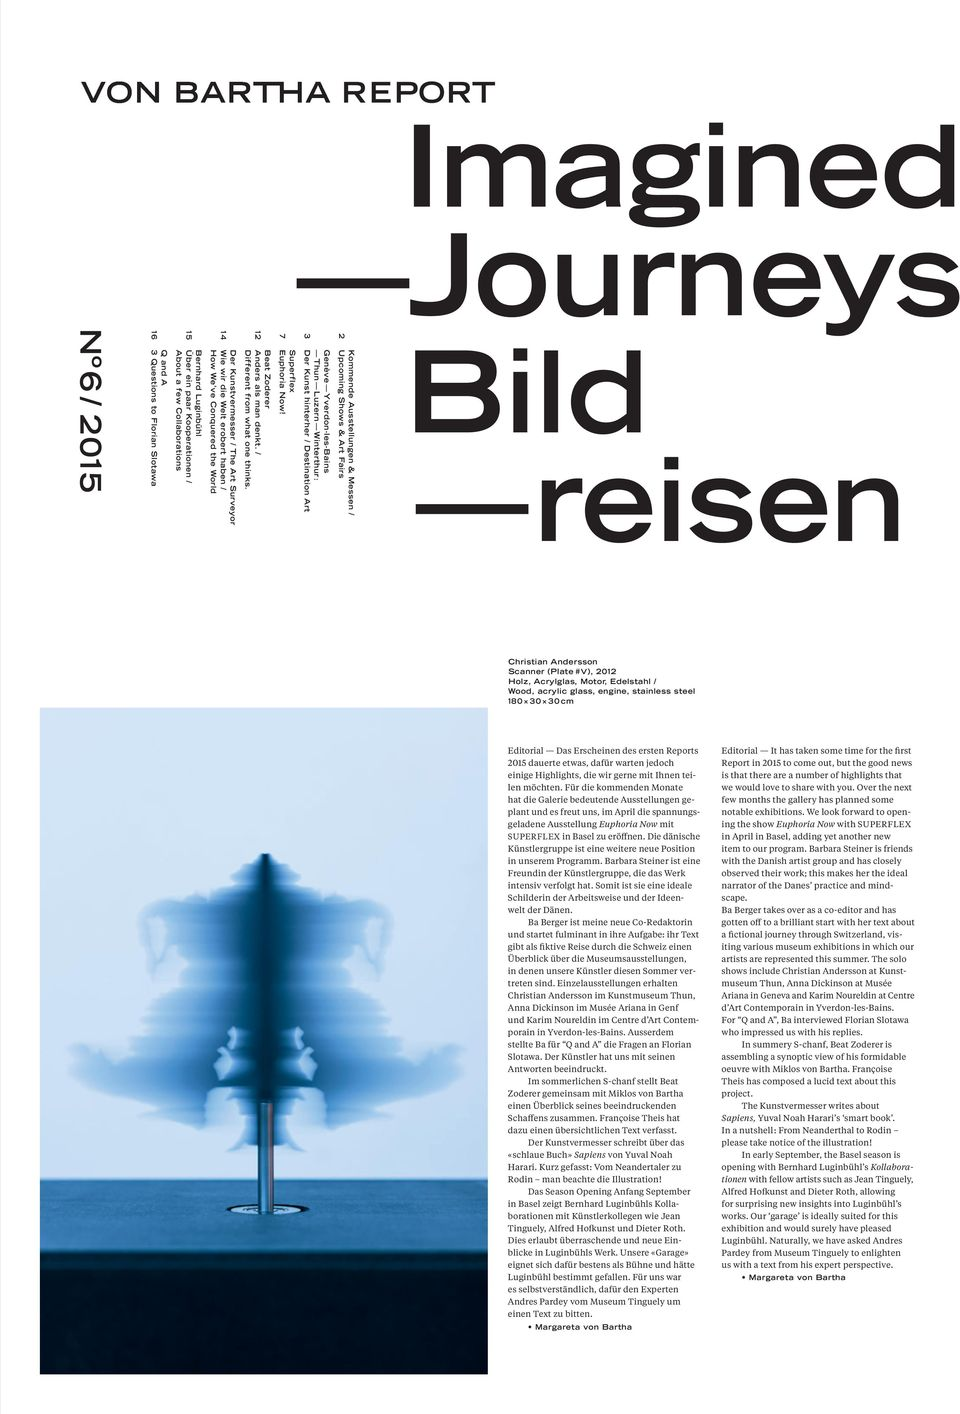 3 Der Kunst hinterher / Destination Art Genève Yverdon-les-Bains Thun Luzern Winterthur : Kommende Ausstel lungen & Messen / 2 Upcoming Shows & Art Fairs Bild reisen Christian Andersson Scanner